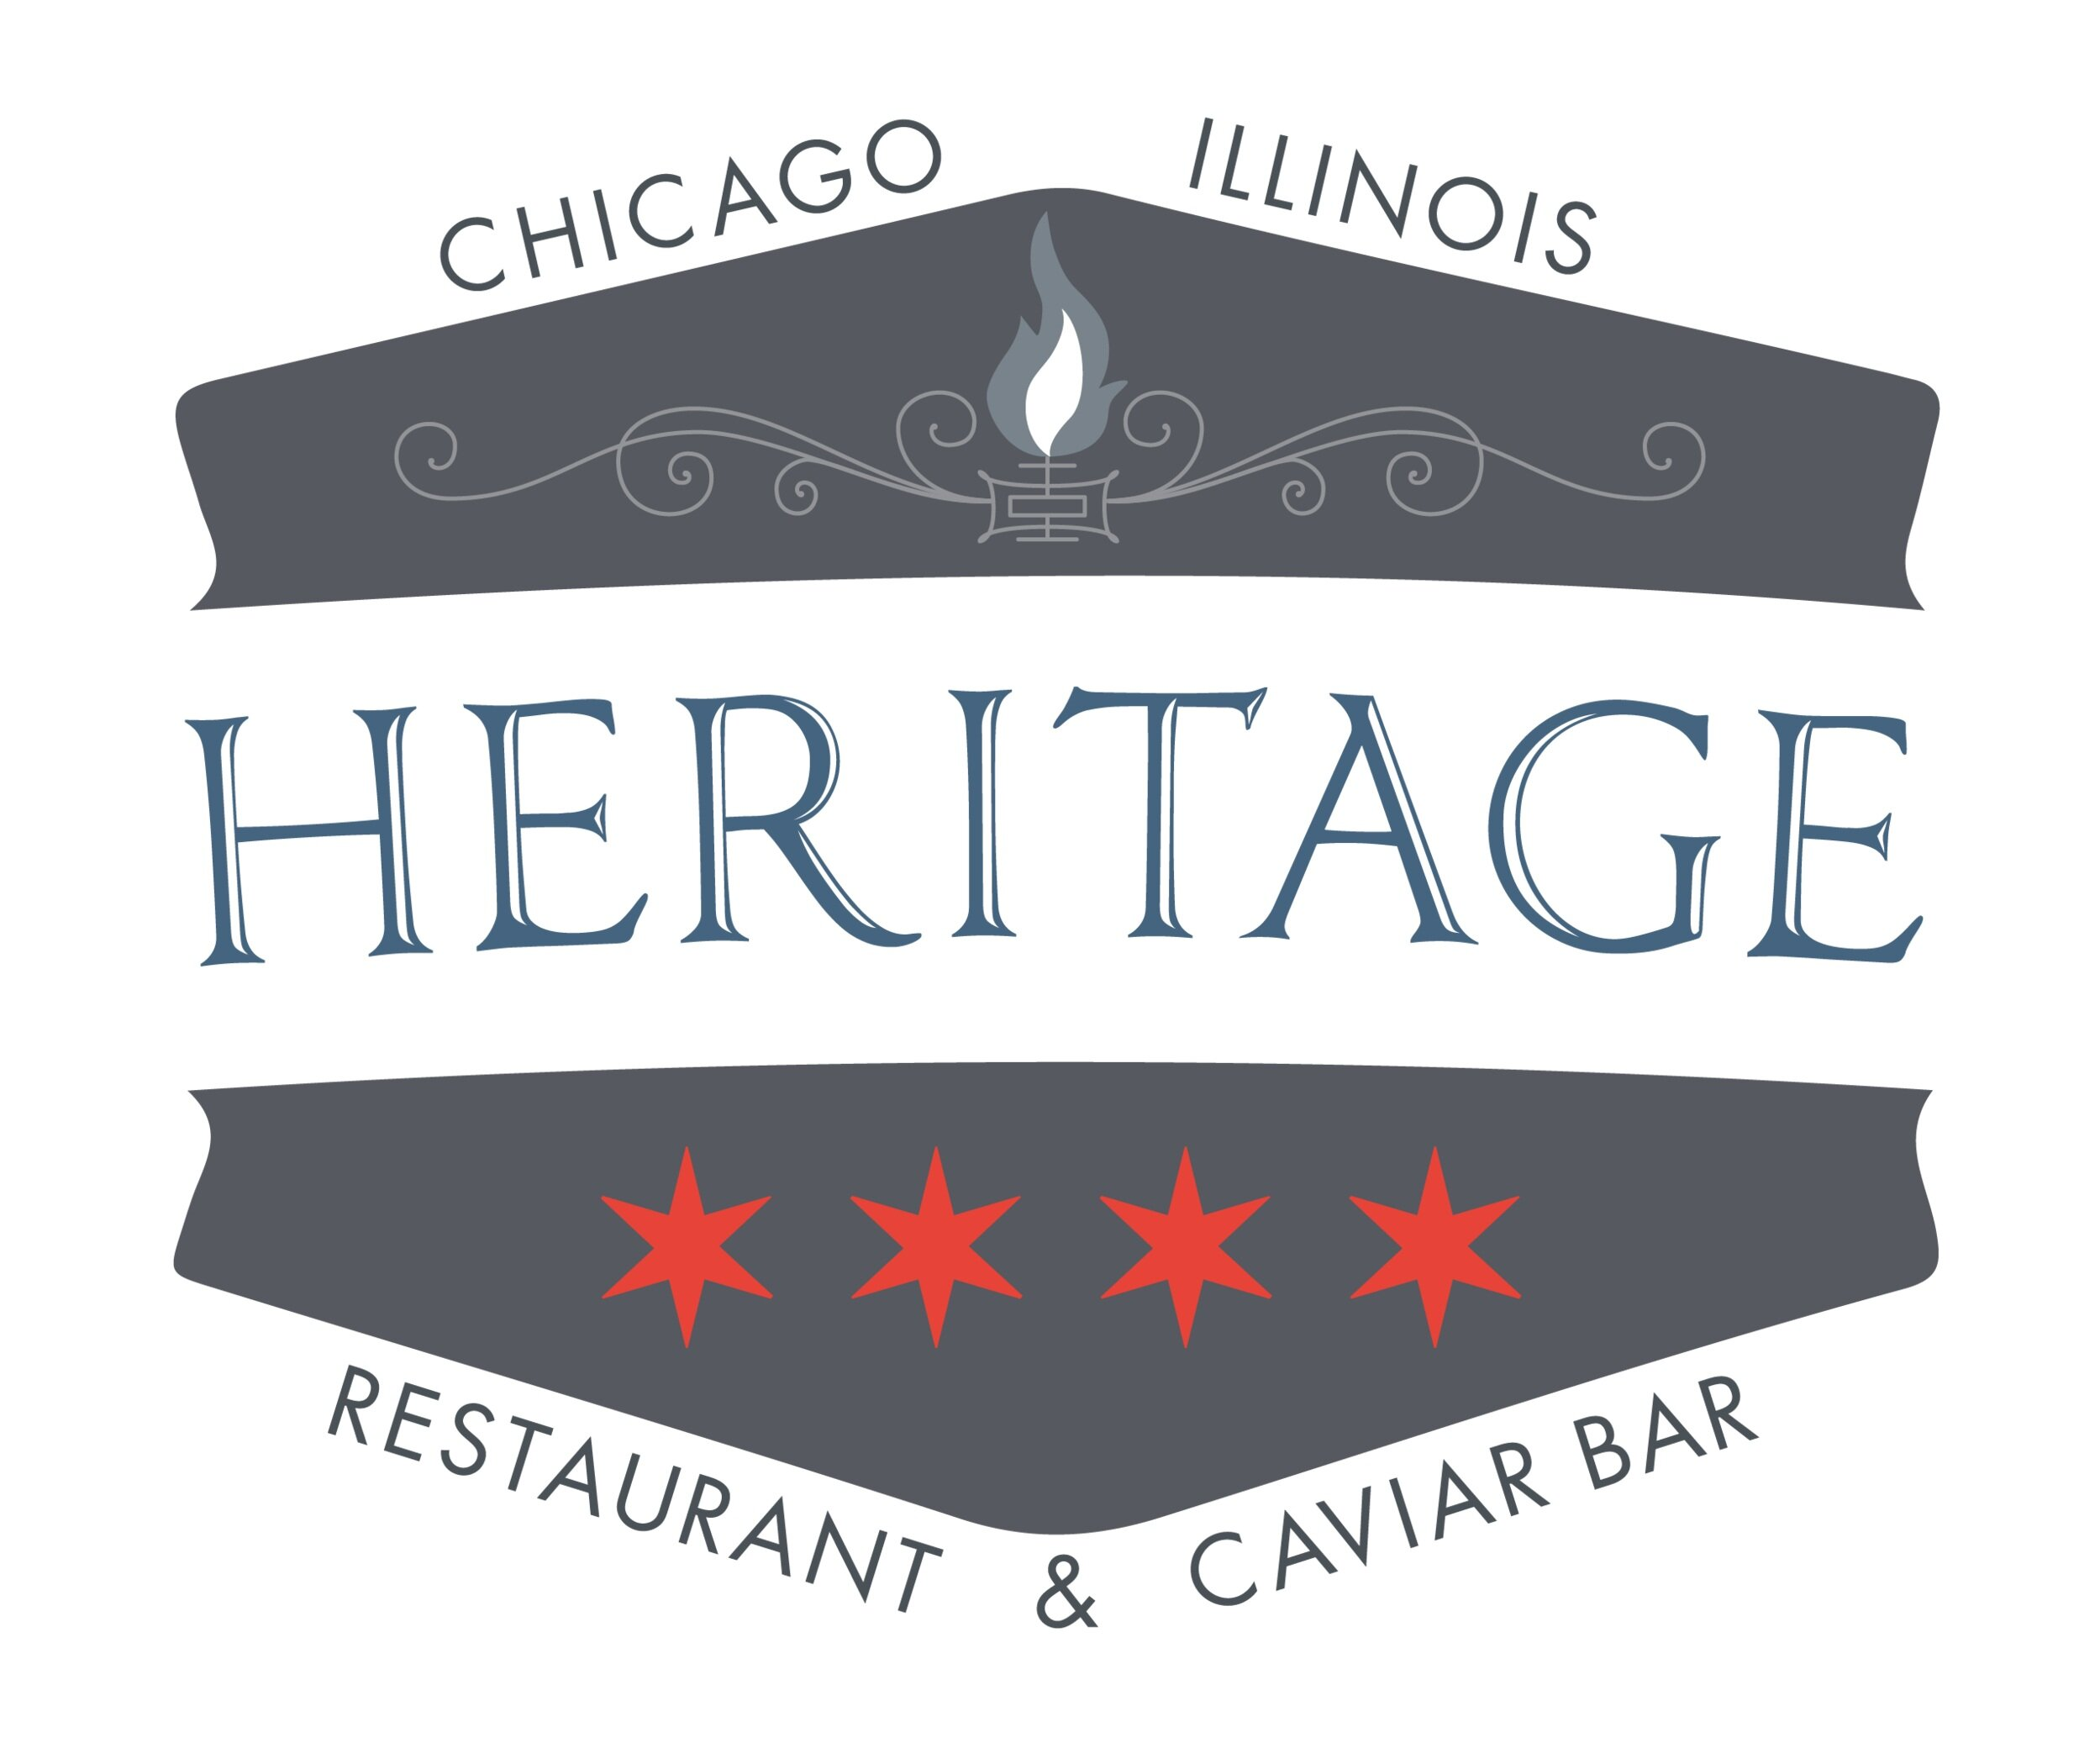 heritage-restaurant-caviar-bar-where-to-go-to-dinner-near-me-60622